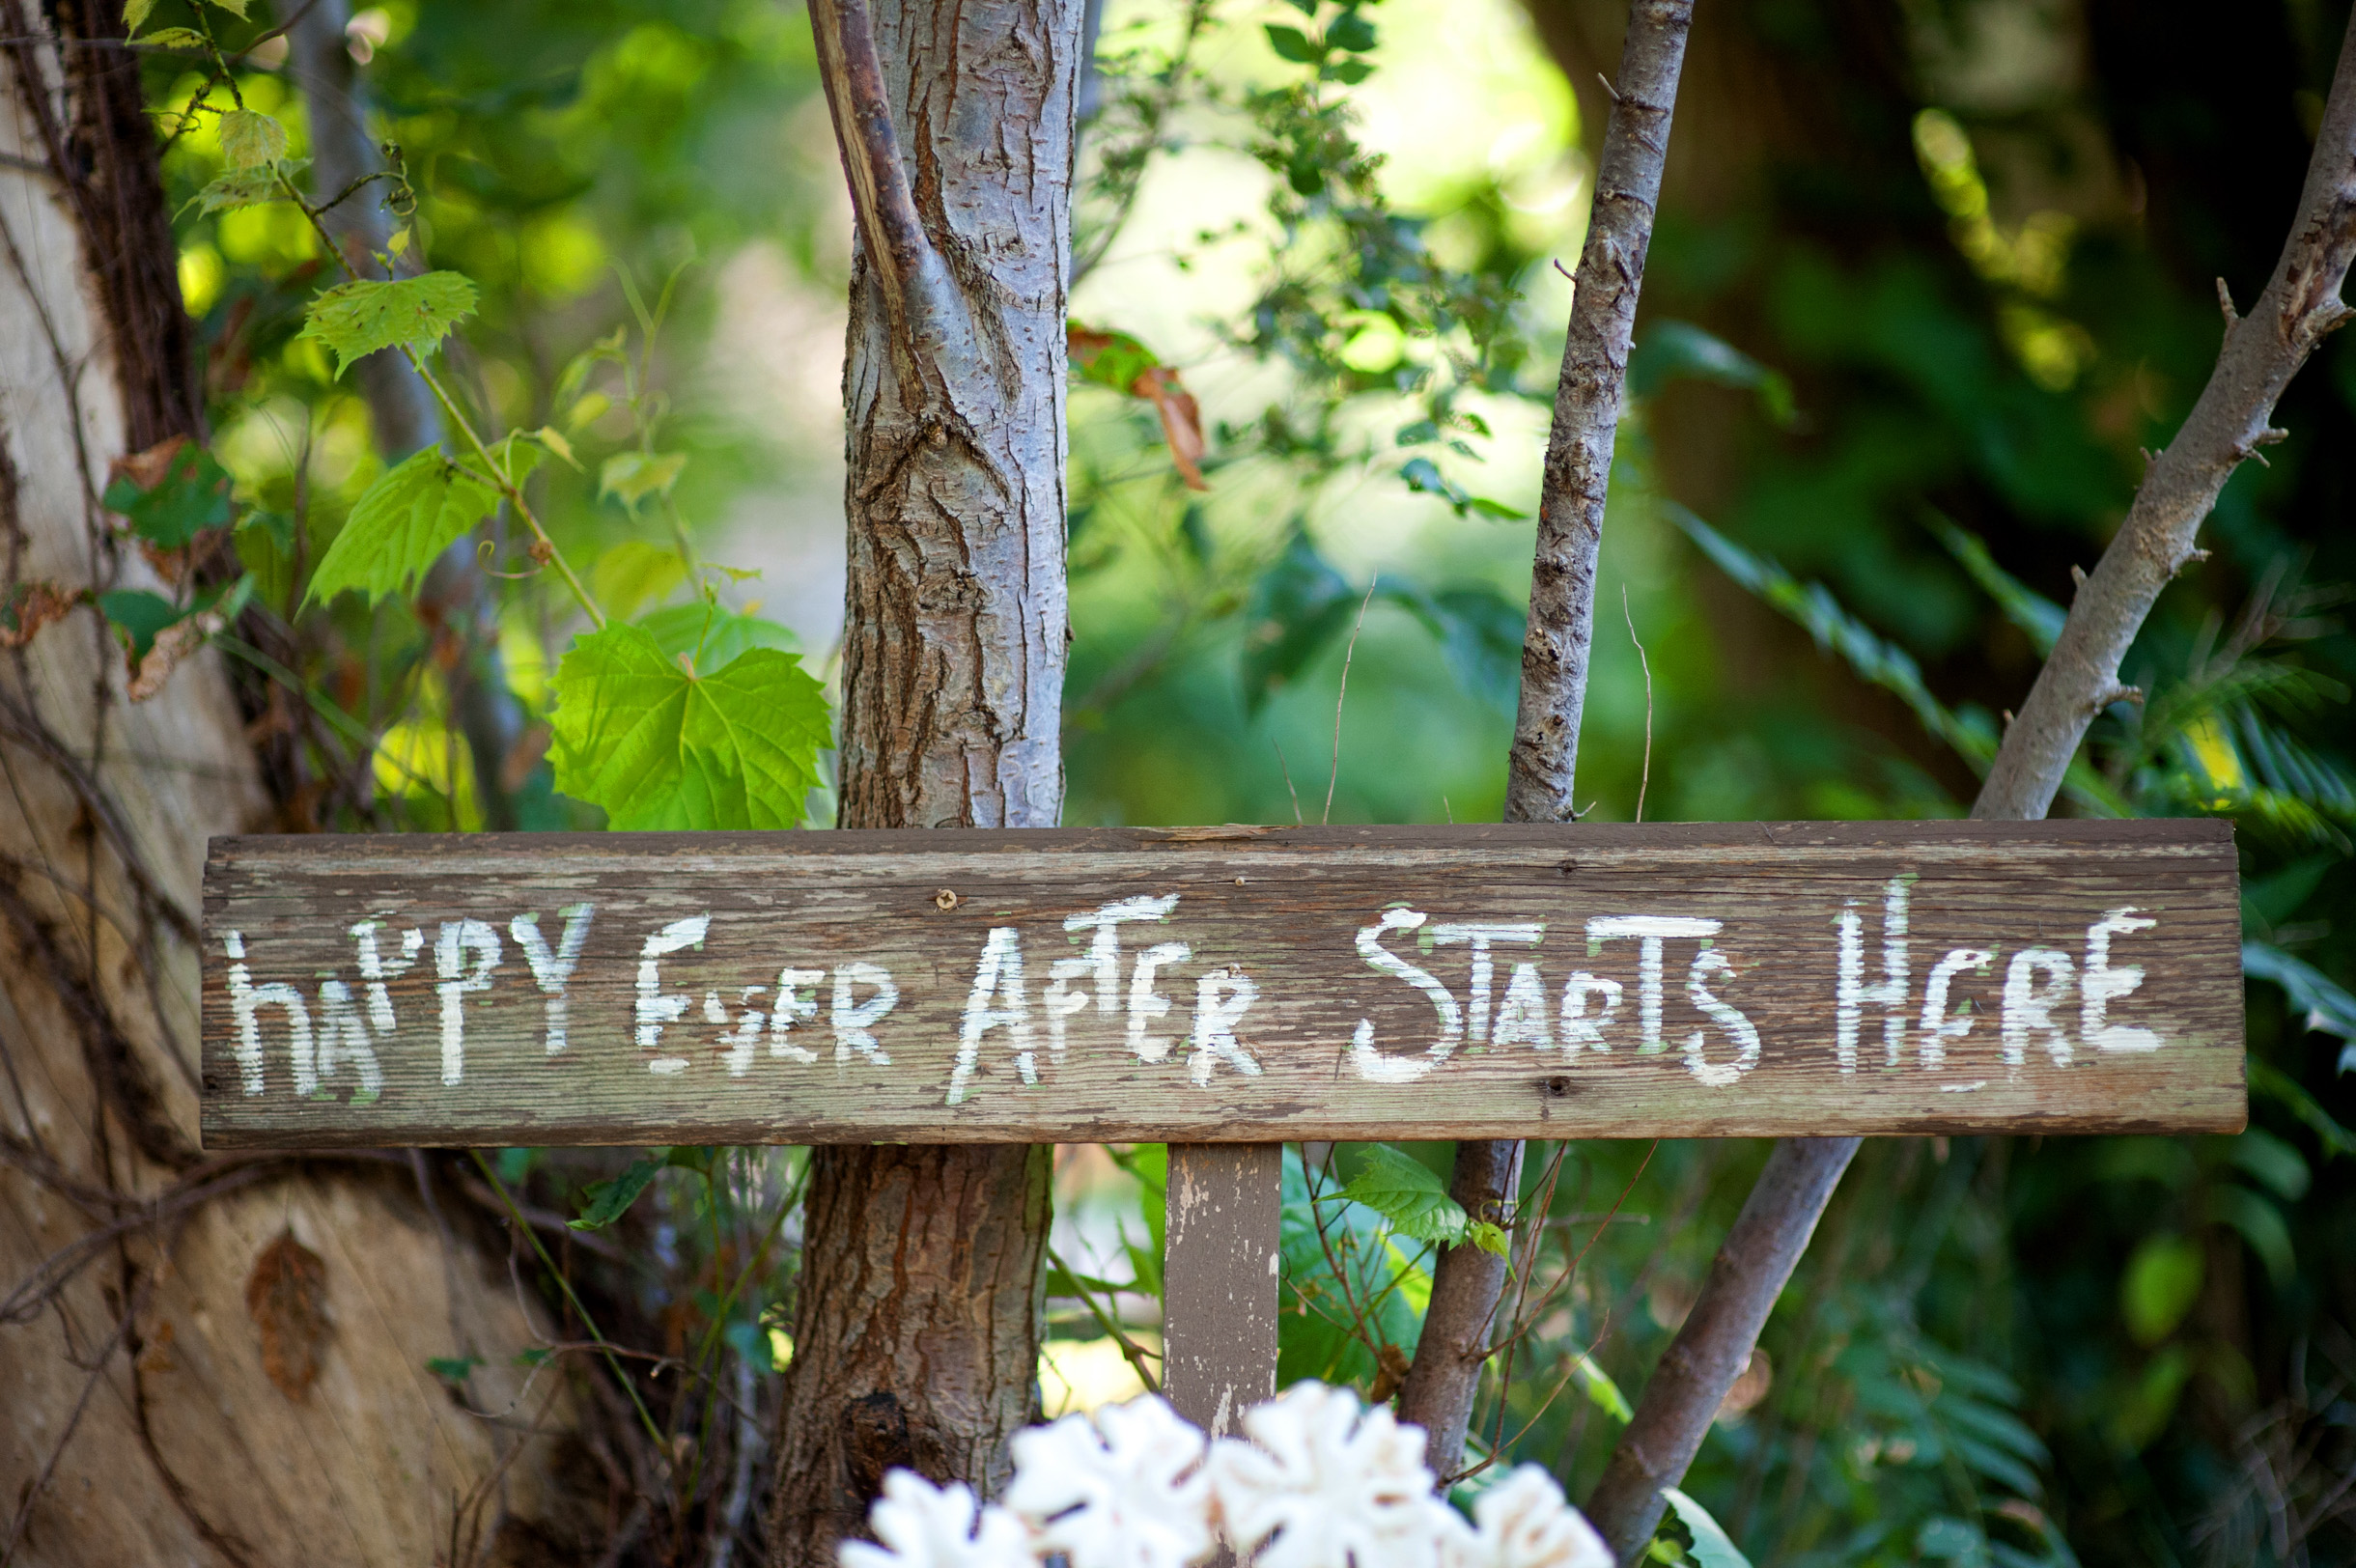 Do it yourself wedding decor sign that reads happy ever after starts here from Blue Dress Barn in Benton Harbor Michigan-230